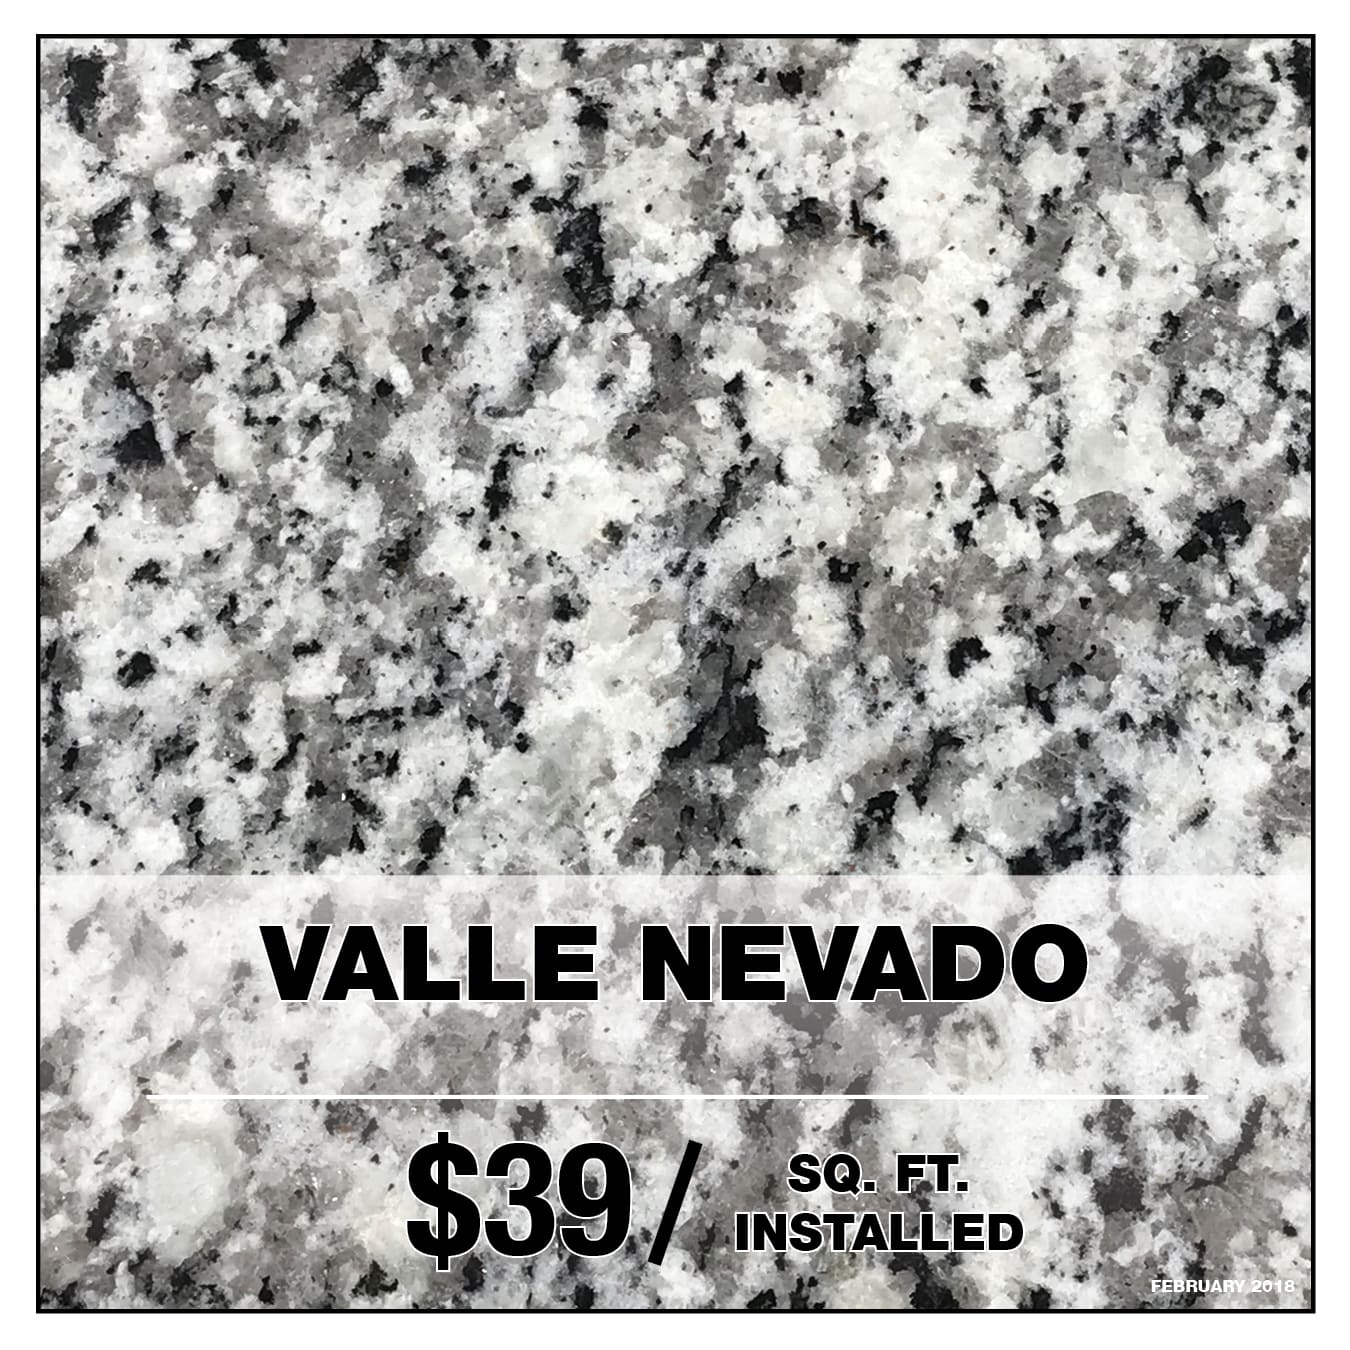 Valle Nevado Cabinetry Stone Depot Wilkes Barre Granite Kitchens Cabinets